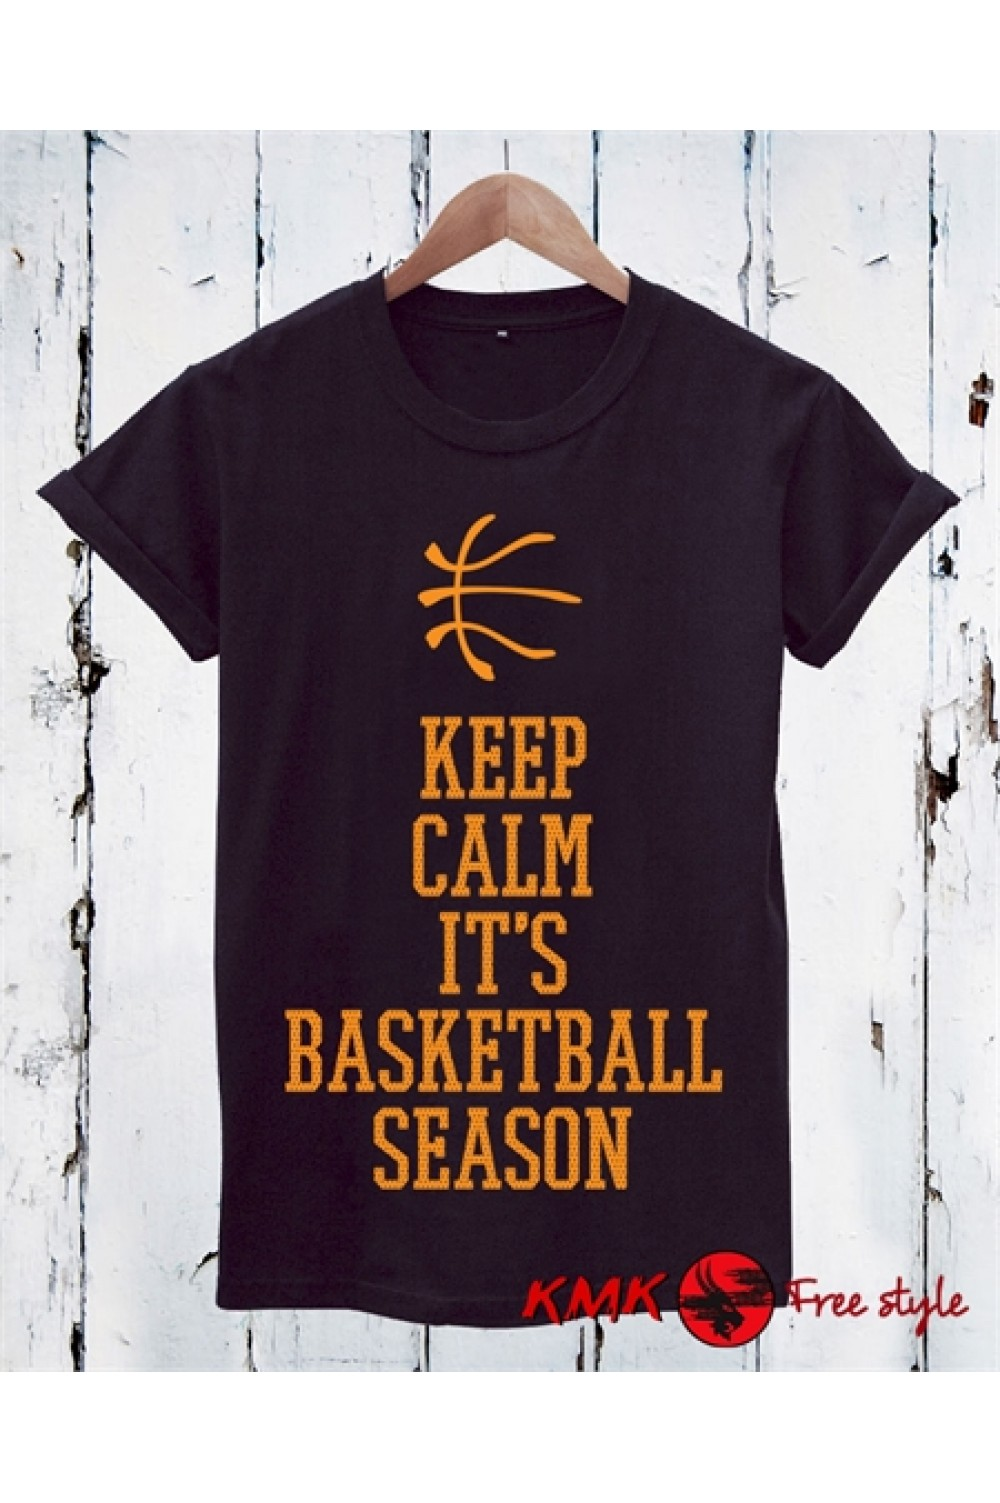 Basketball Season Printed T shirt | Basketball Tanktop | Sport Tee | Motivation Shirt